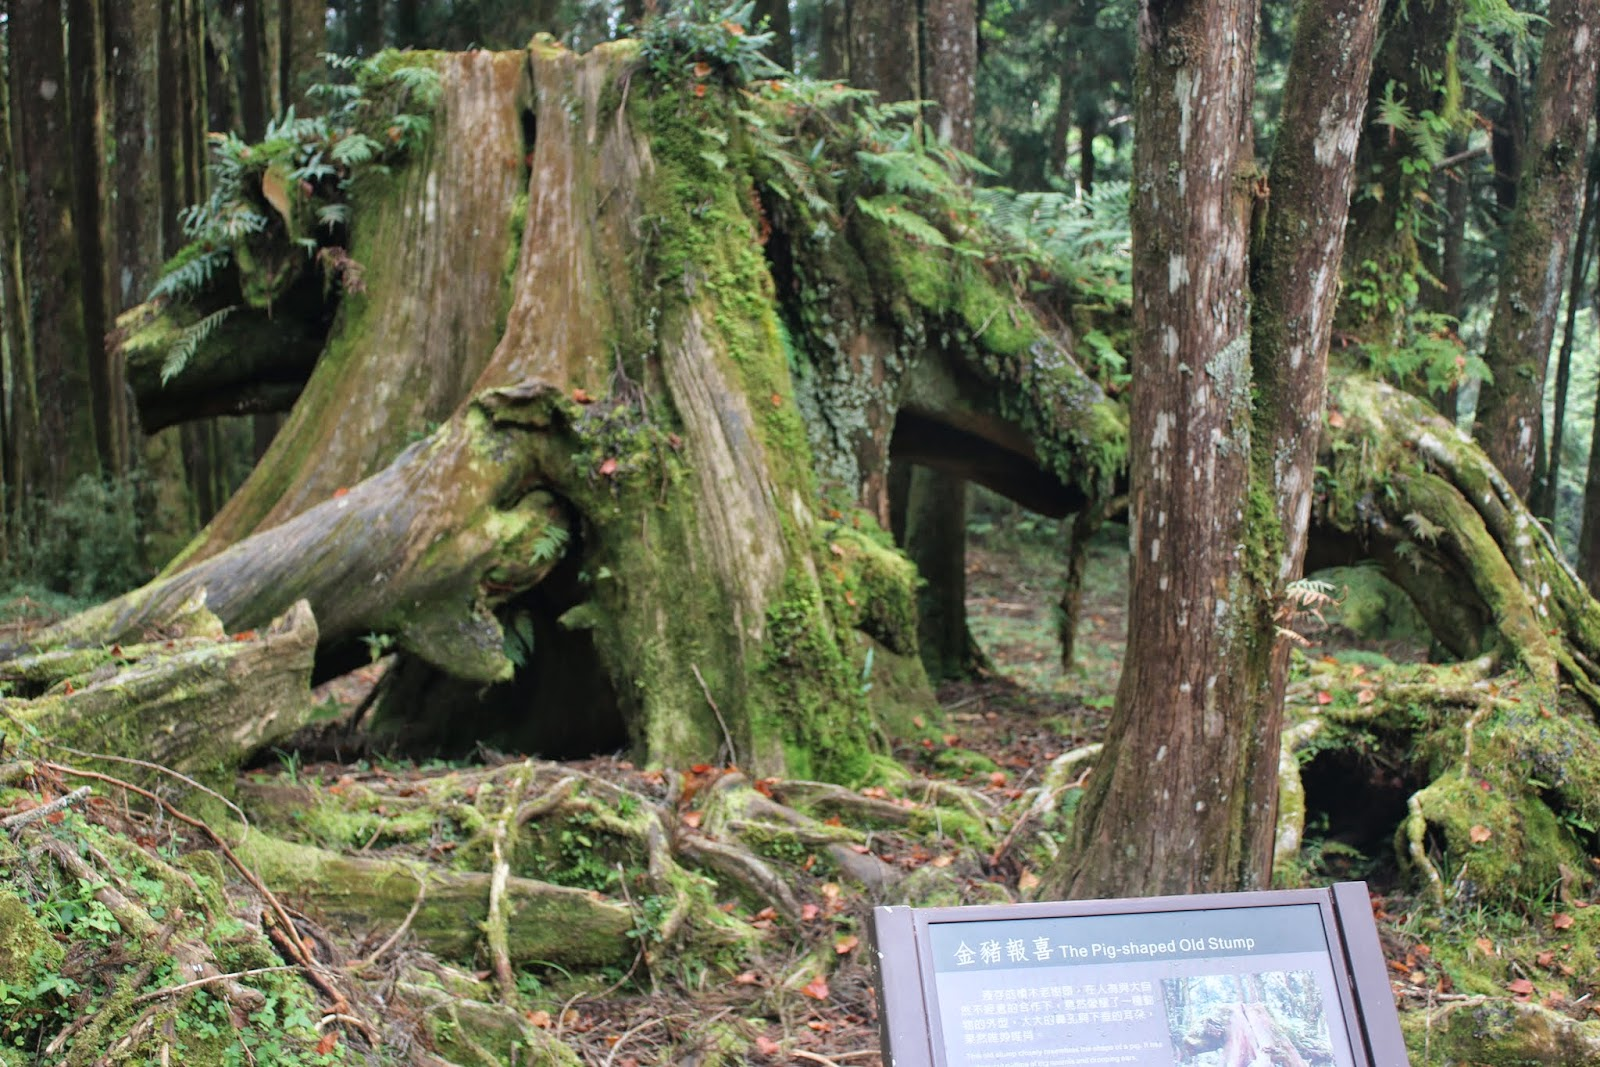 Pig shaped Old Stump at Alishan Sacred Tree in Chiayi County of Taiwan